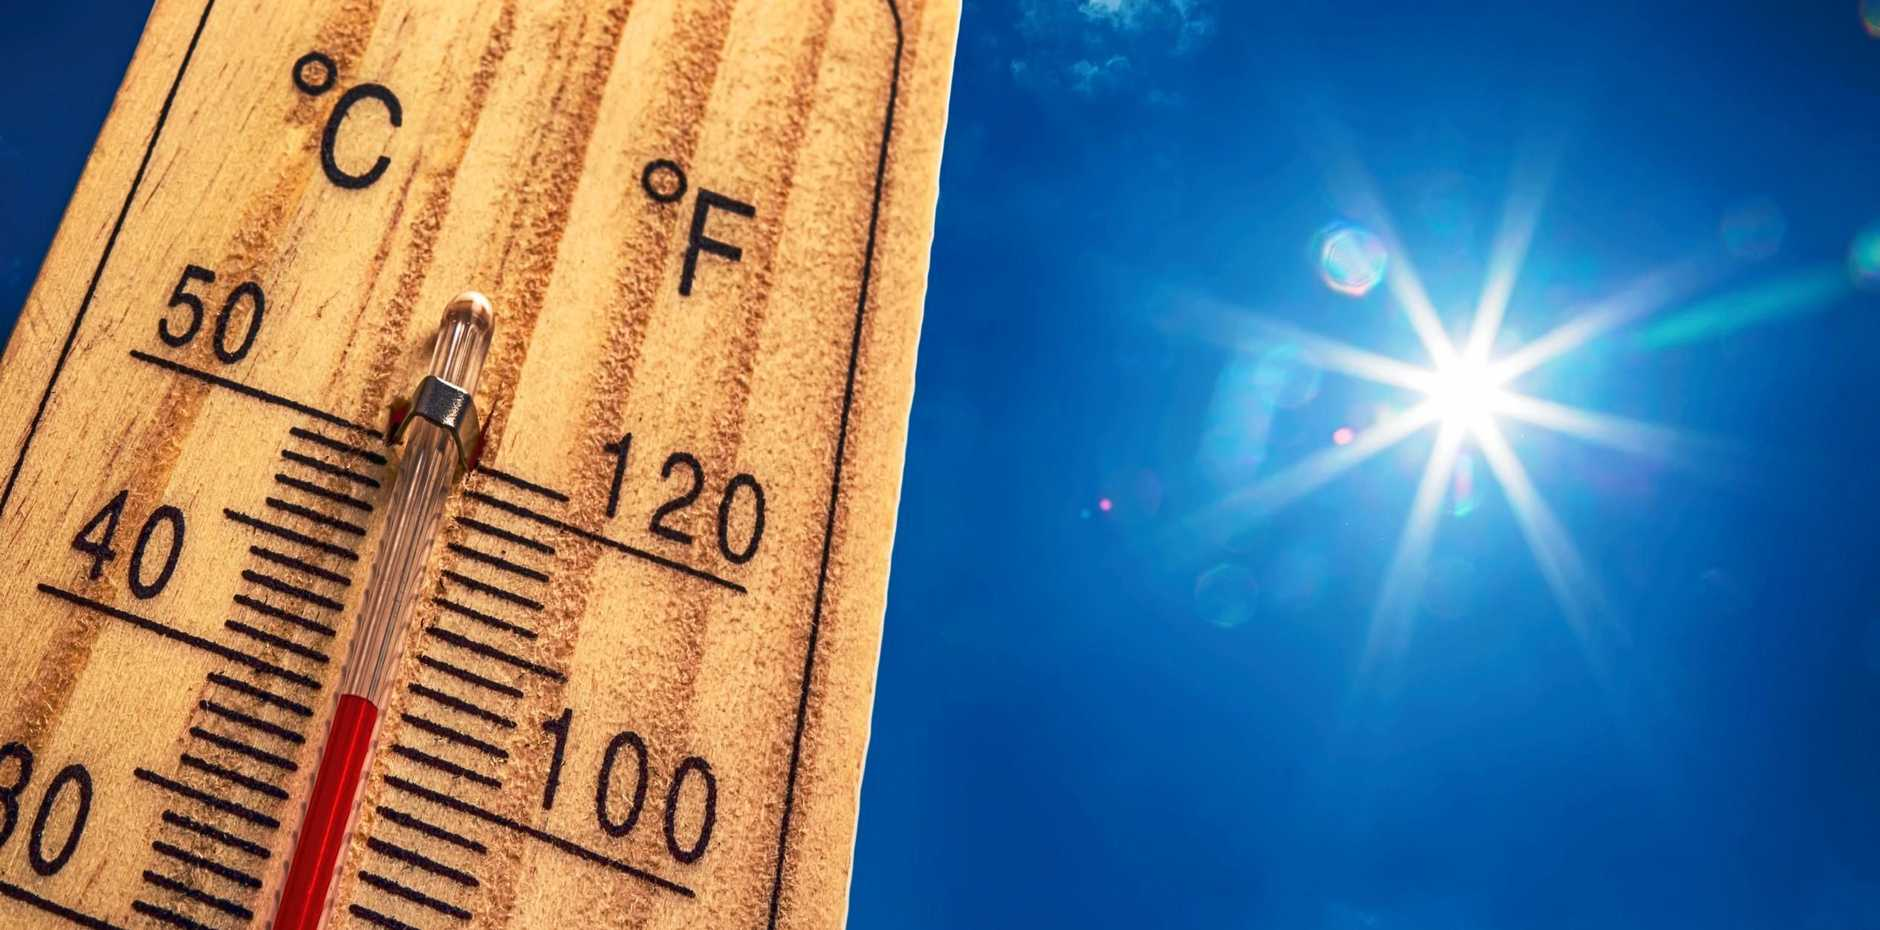 HOT WEEKEND: The North Burnett reached 36 degrees over the weekend and is expected to drop by Monday morning.